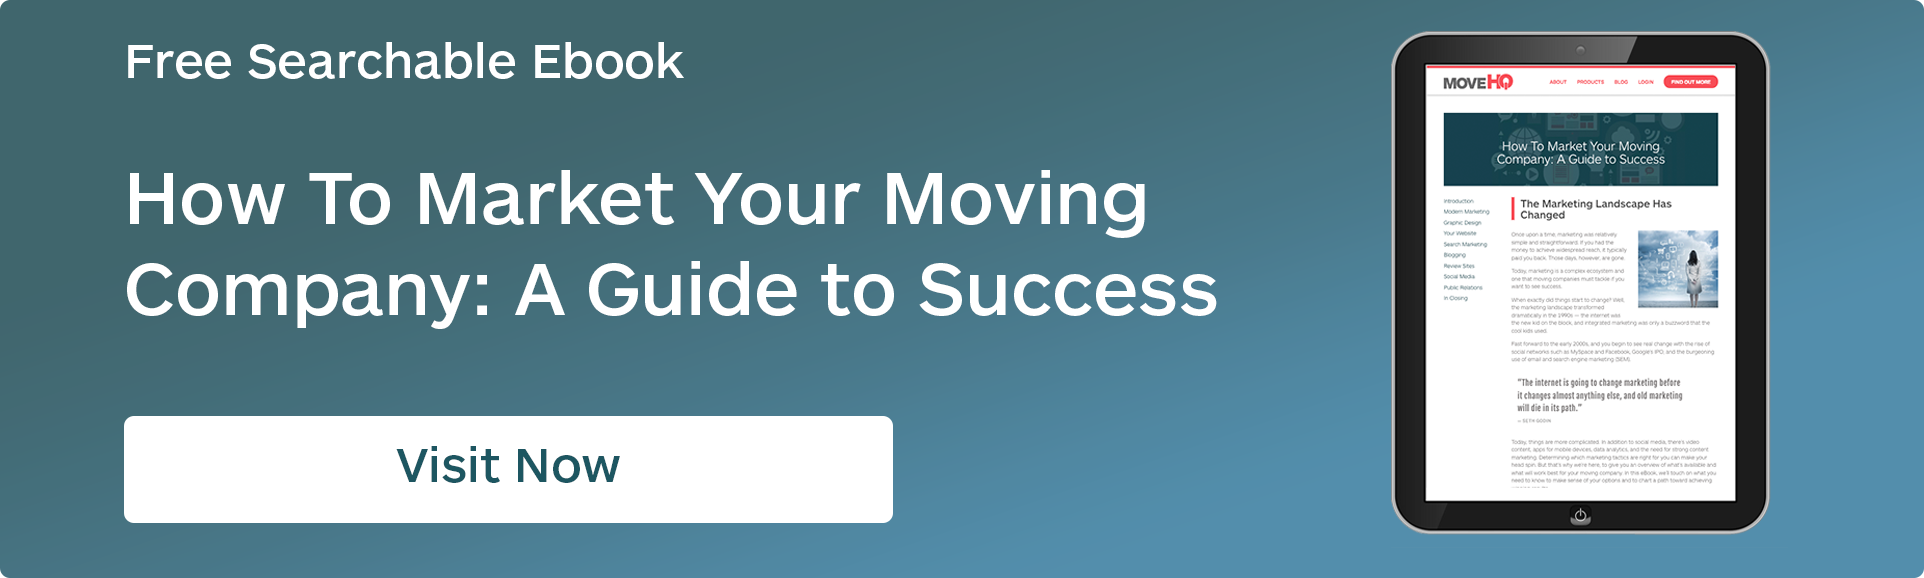 How_to_market_moving_company_button.png